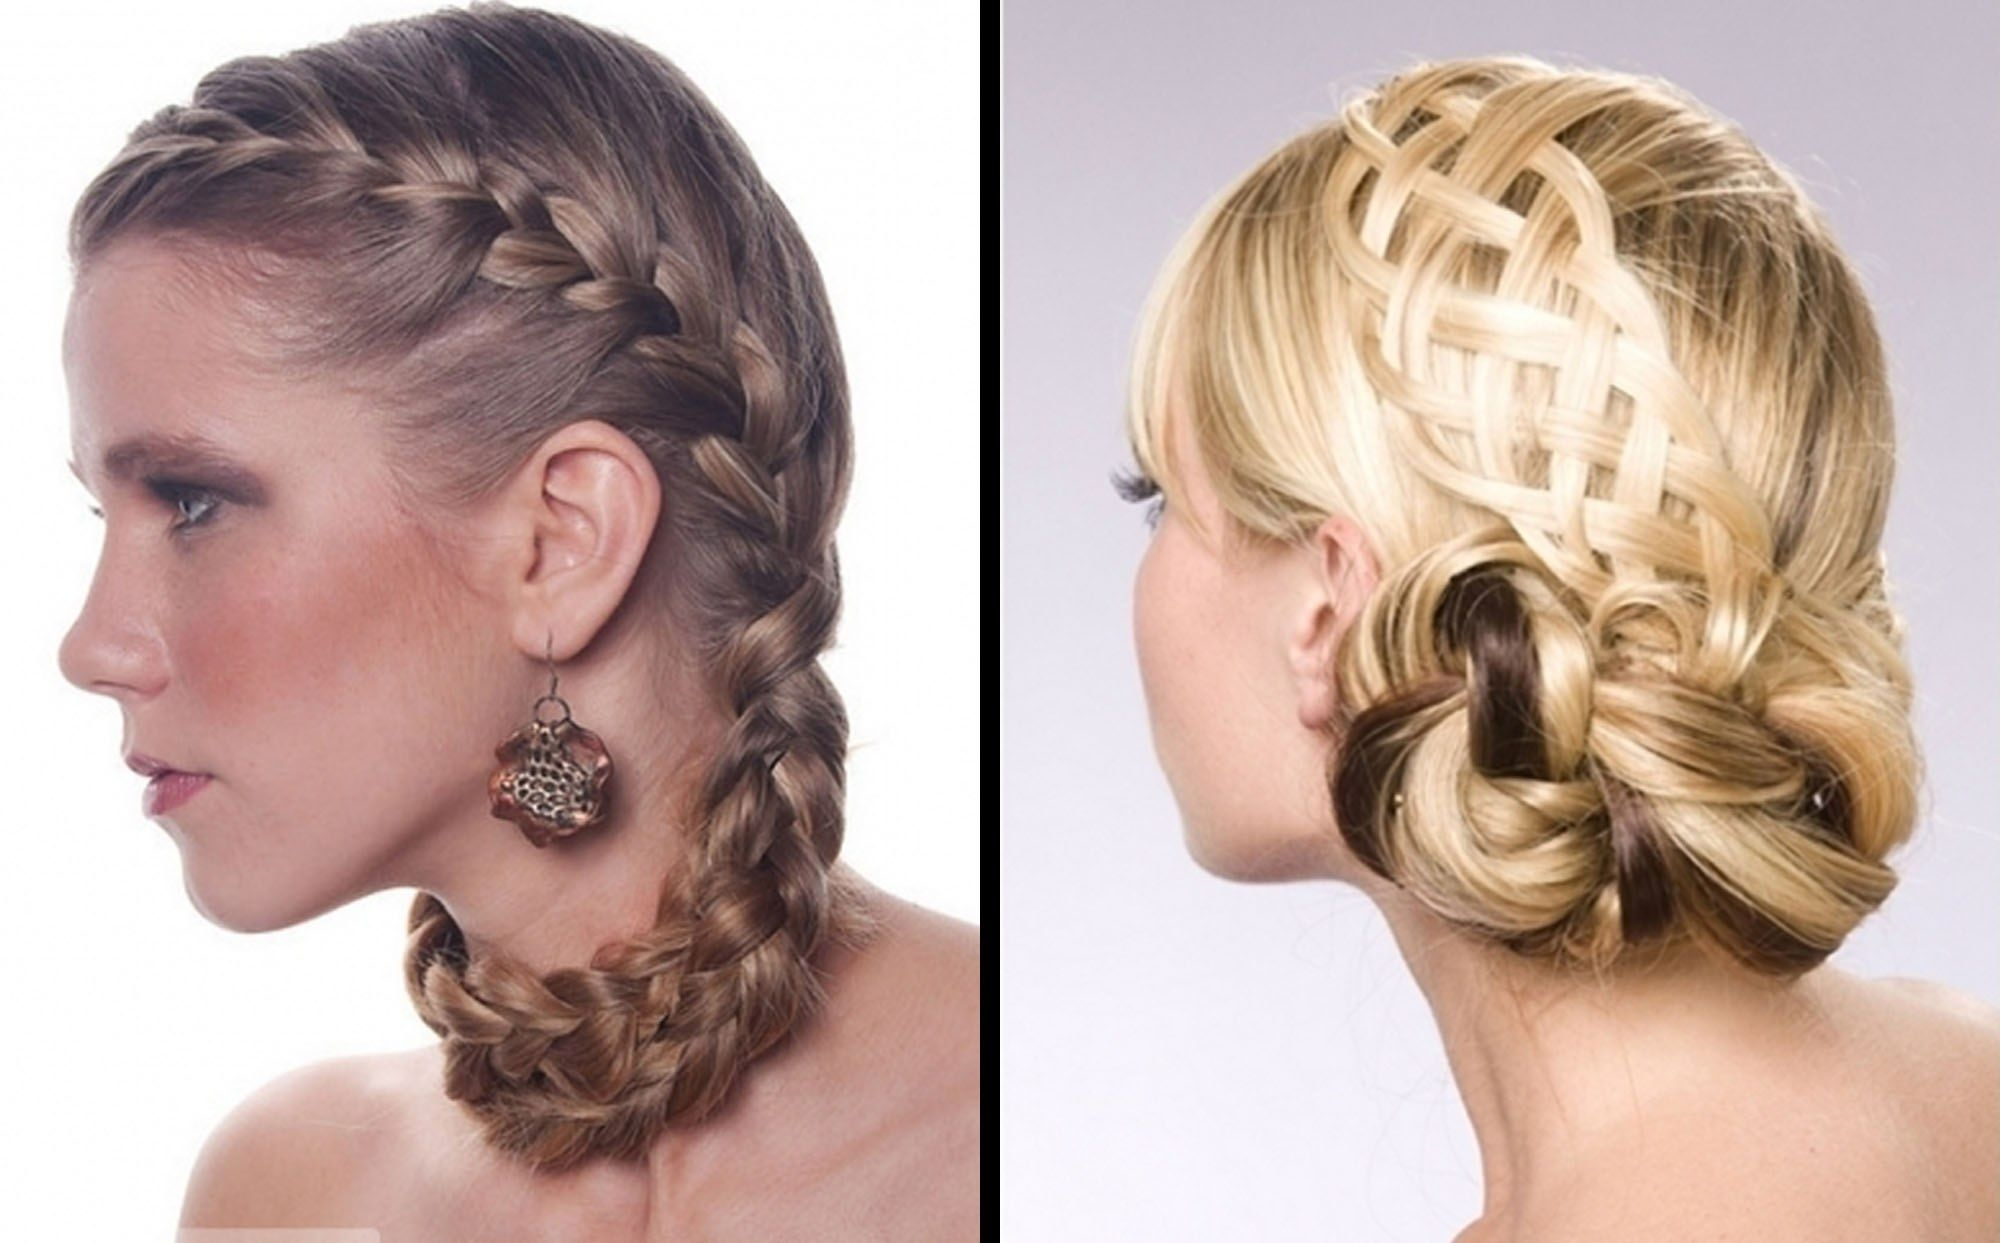 11 Fresh Homecoming Hairstyles for Short Hair - Hairstyles